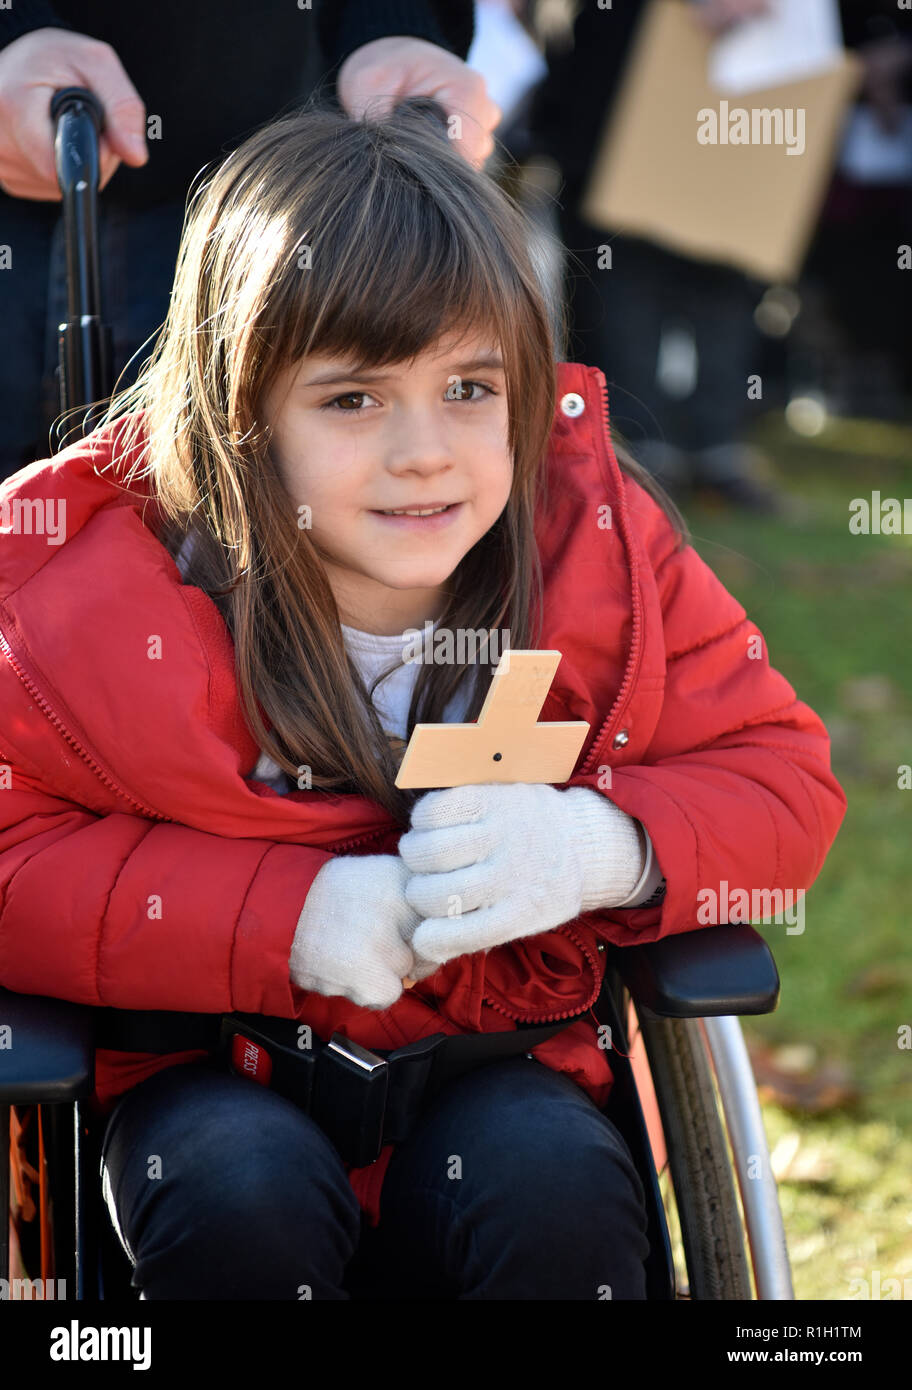 Young girl with poppy cross in wheelchair attending Remembrance Sunday, War Memorial, Bordon, Hampshire, UK. 11.11.2018. - Stock Image